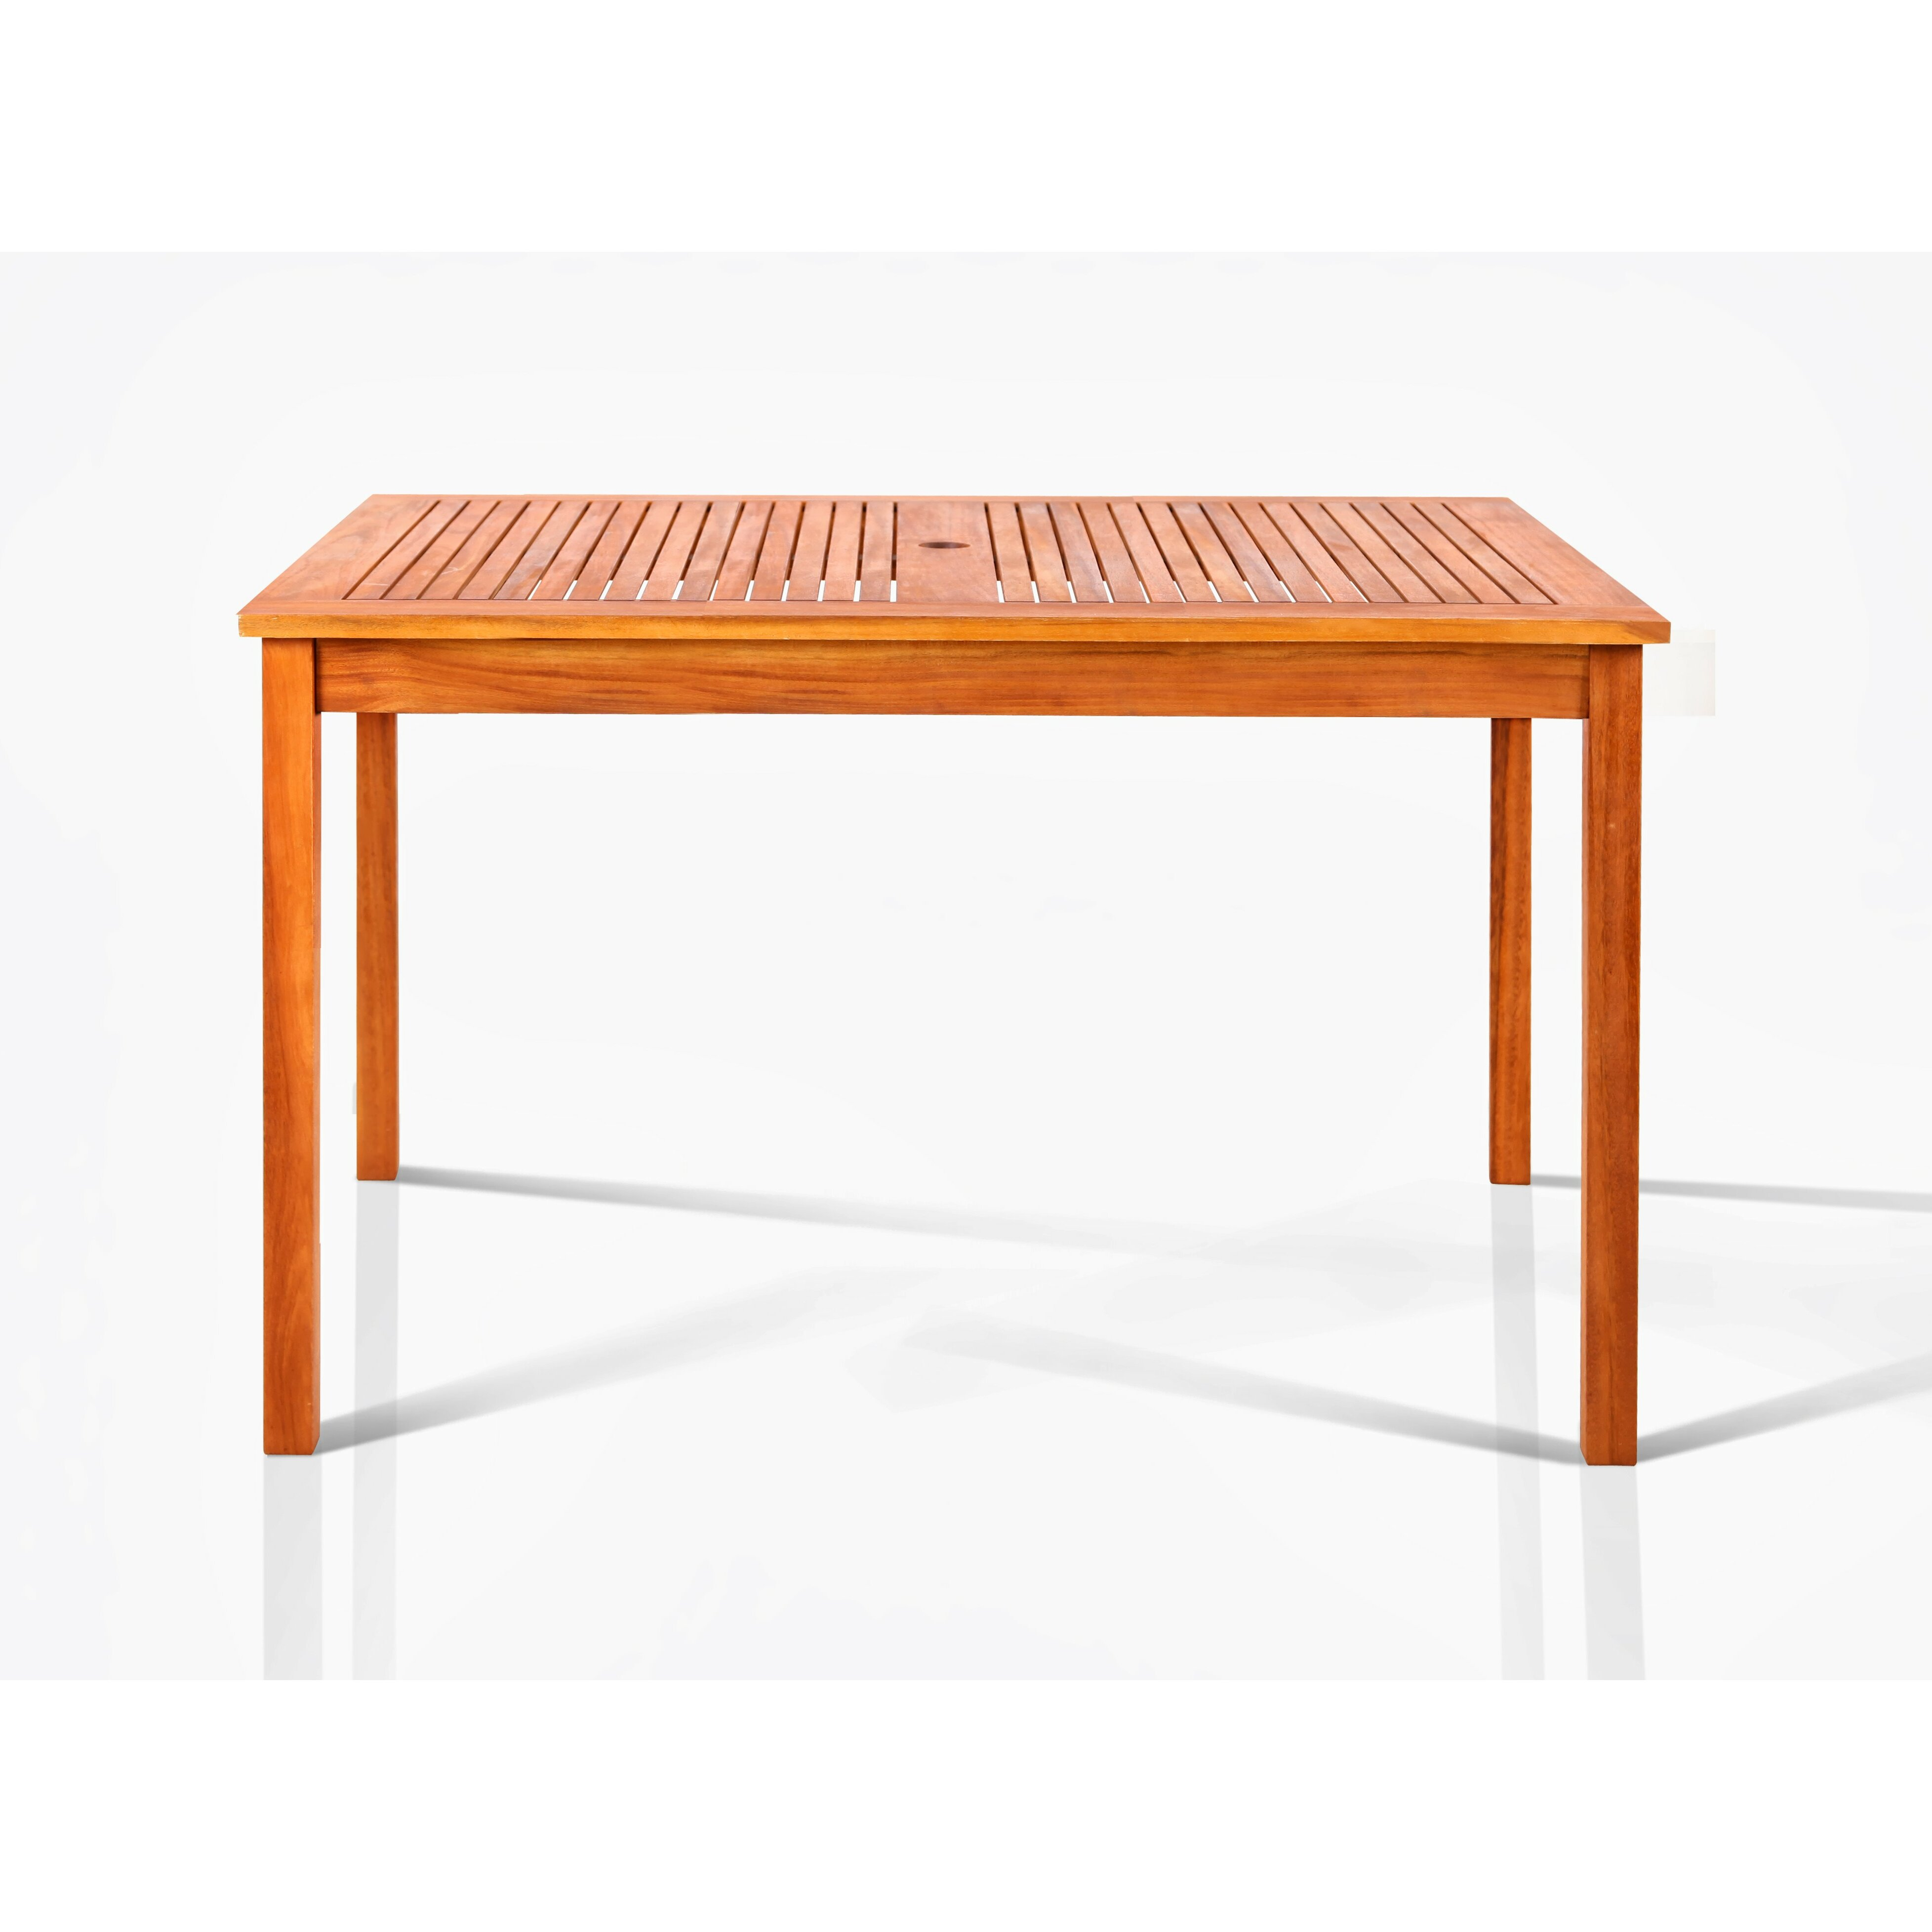 Vifah well dining table reviews wayfair for Wayfair dining table